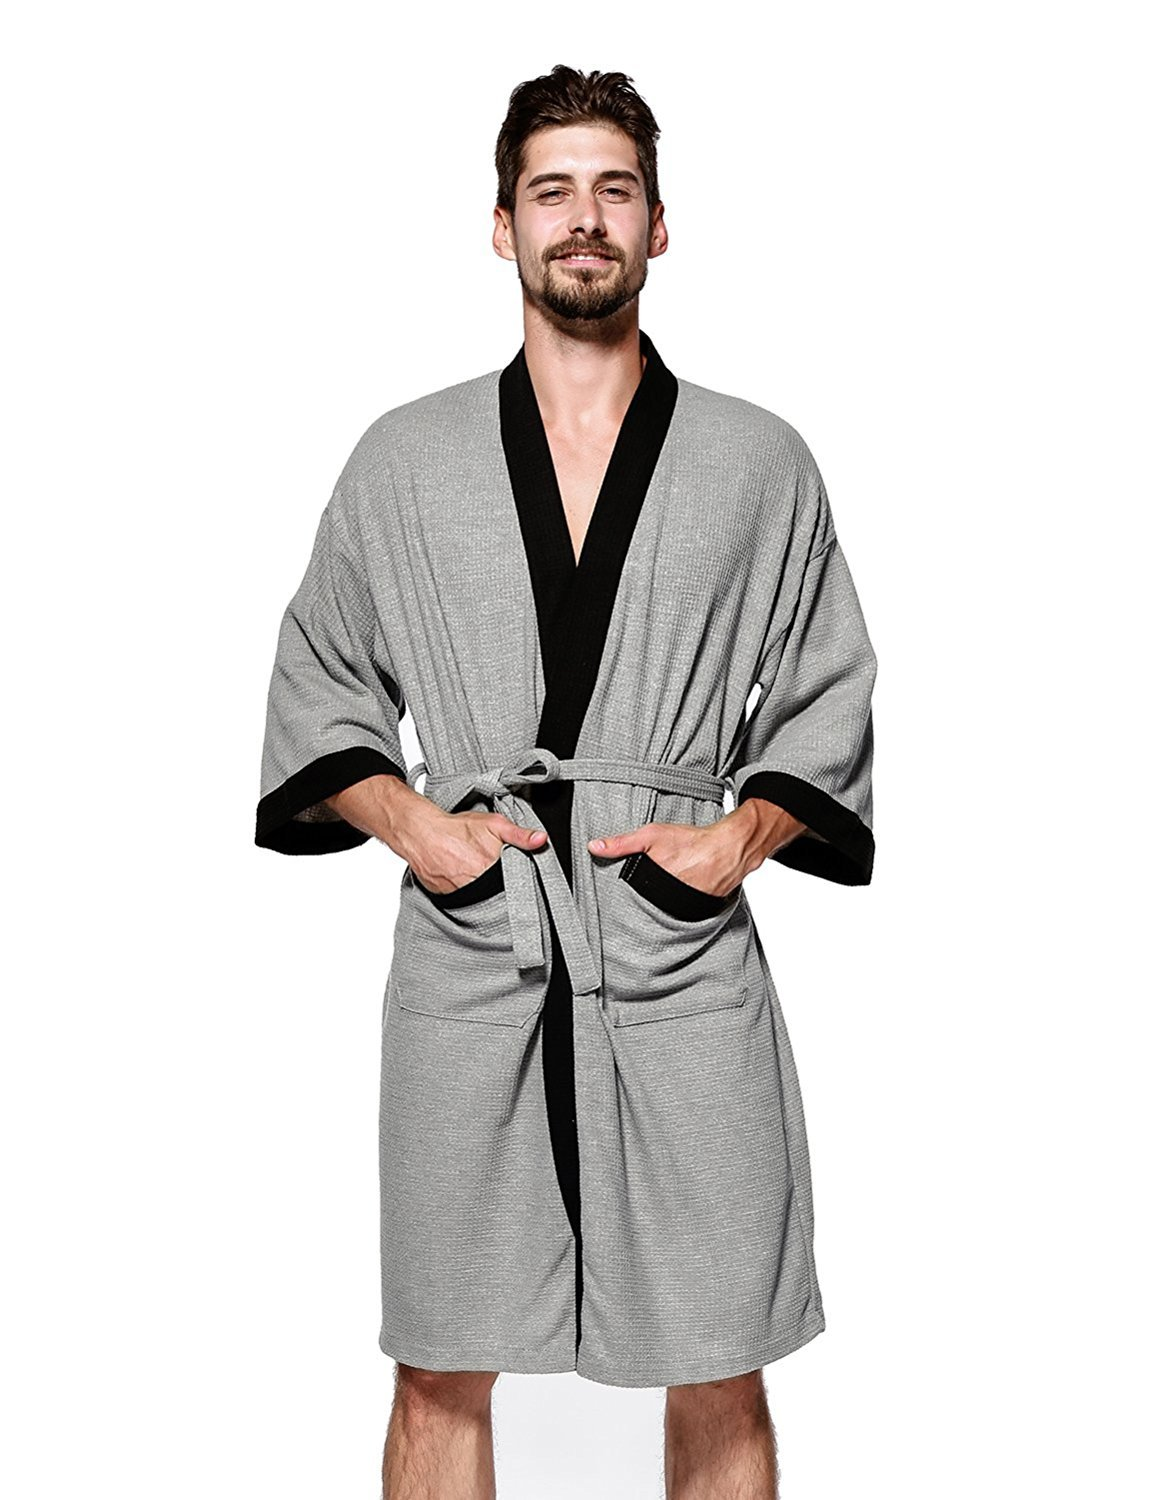 Aobo Men's Waffle-Weave Kimono Robe Cotton Spa Bathrobe Lightweight Soft Knee Length Sleepwear